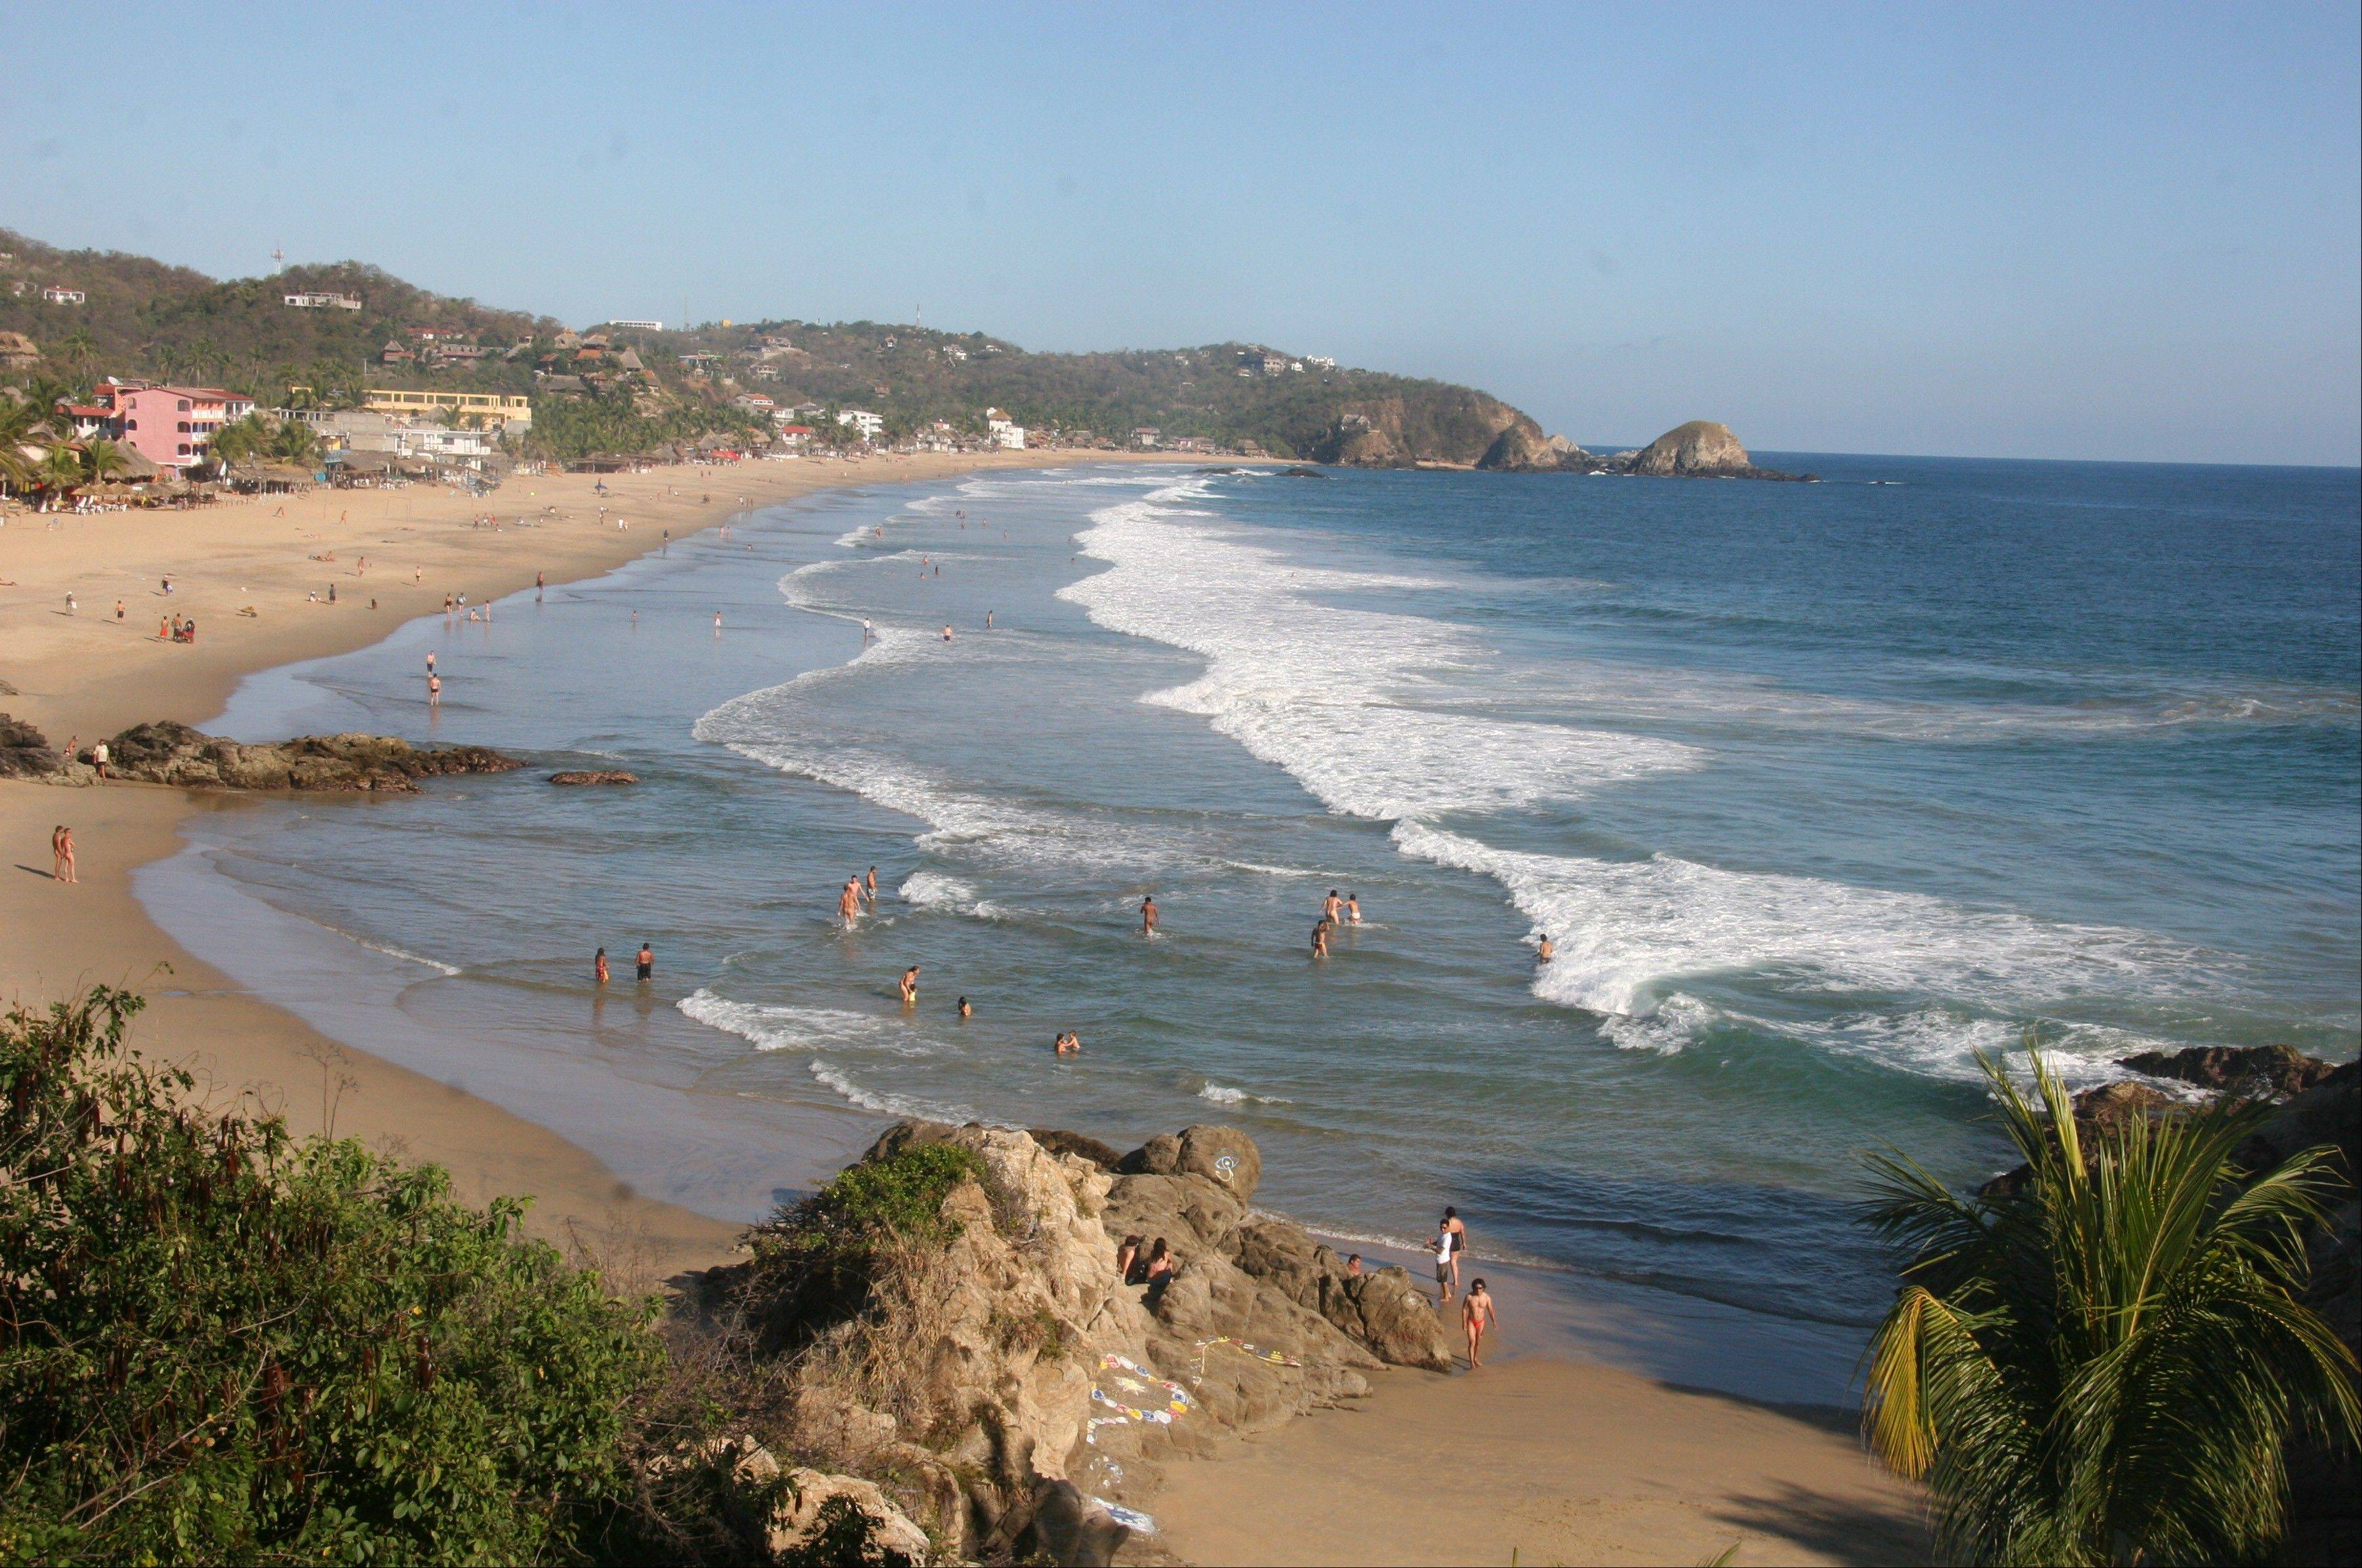 Visitors enjoy the surf along the beach in the sleepy town of Zipolite, Mexico.